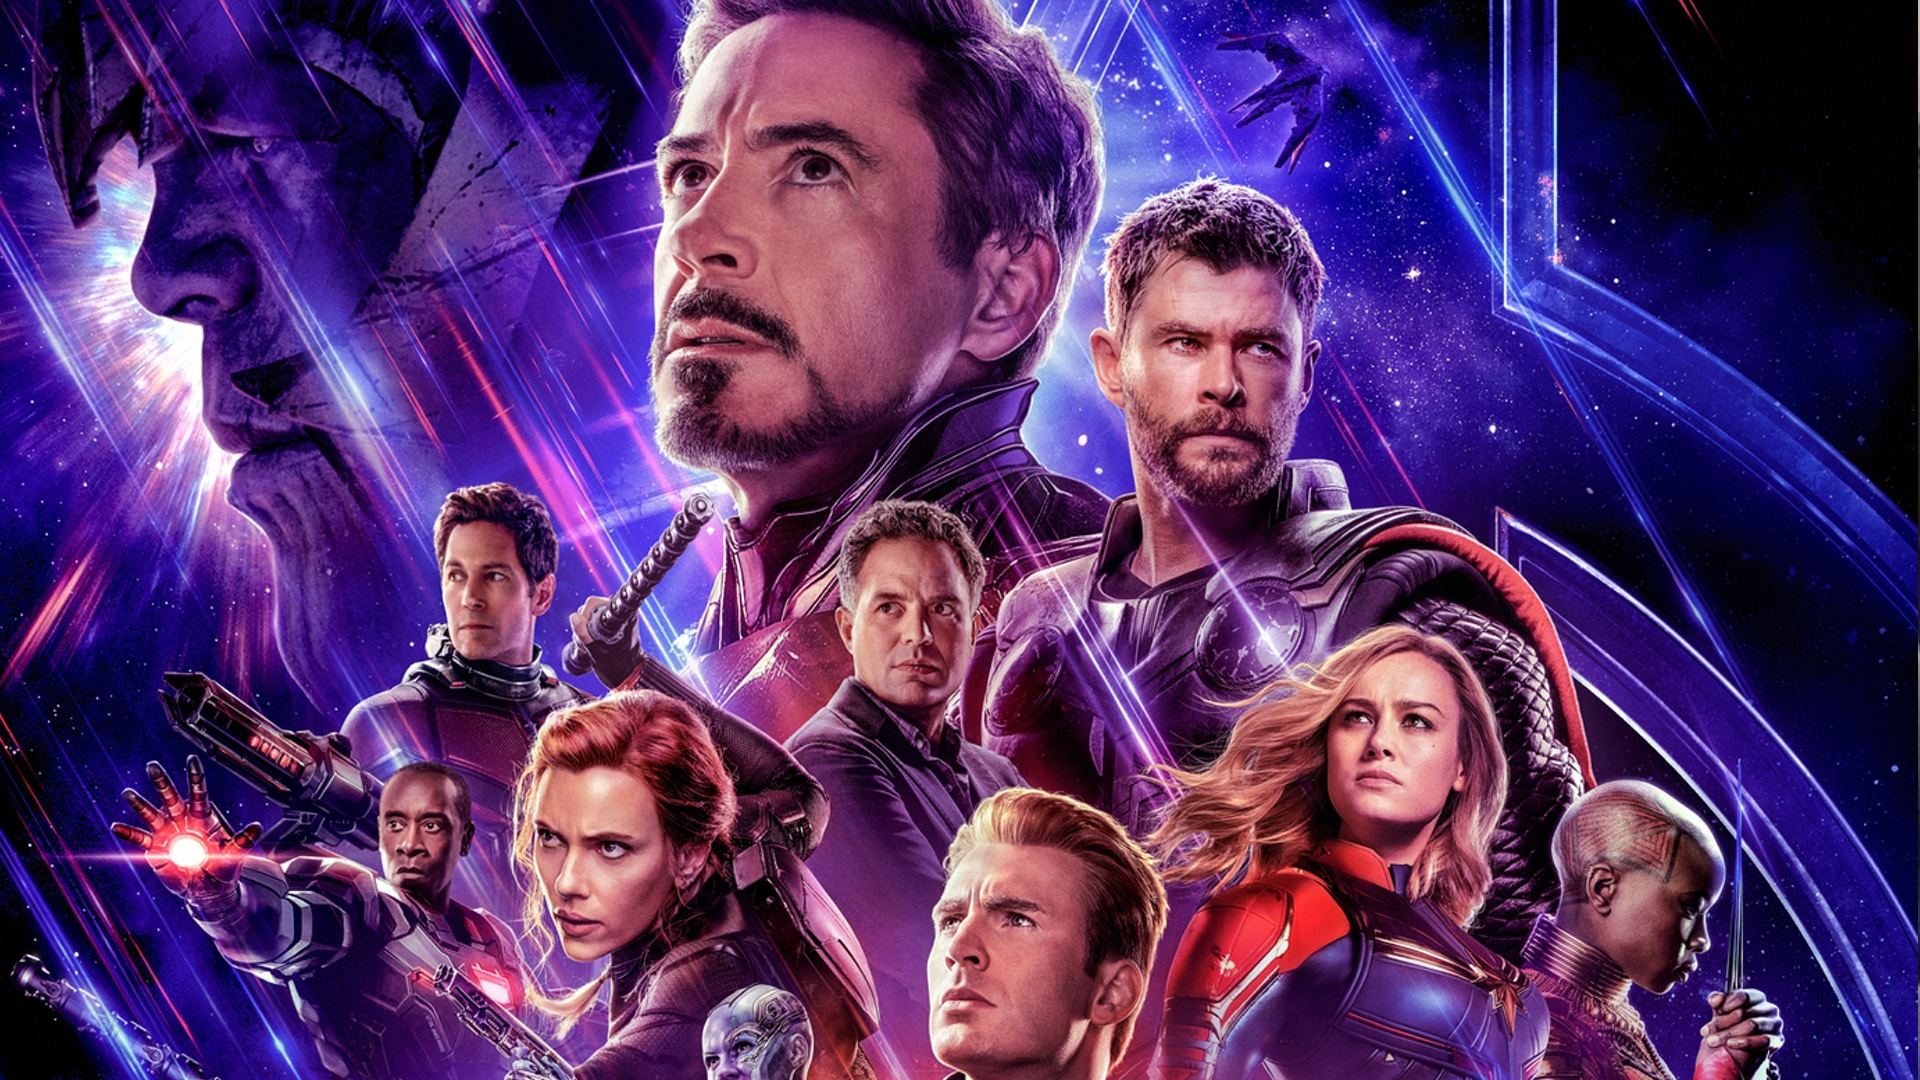 Avengers Endgame Character Posters Feature Both Living And Dead